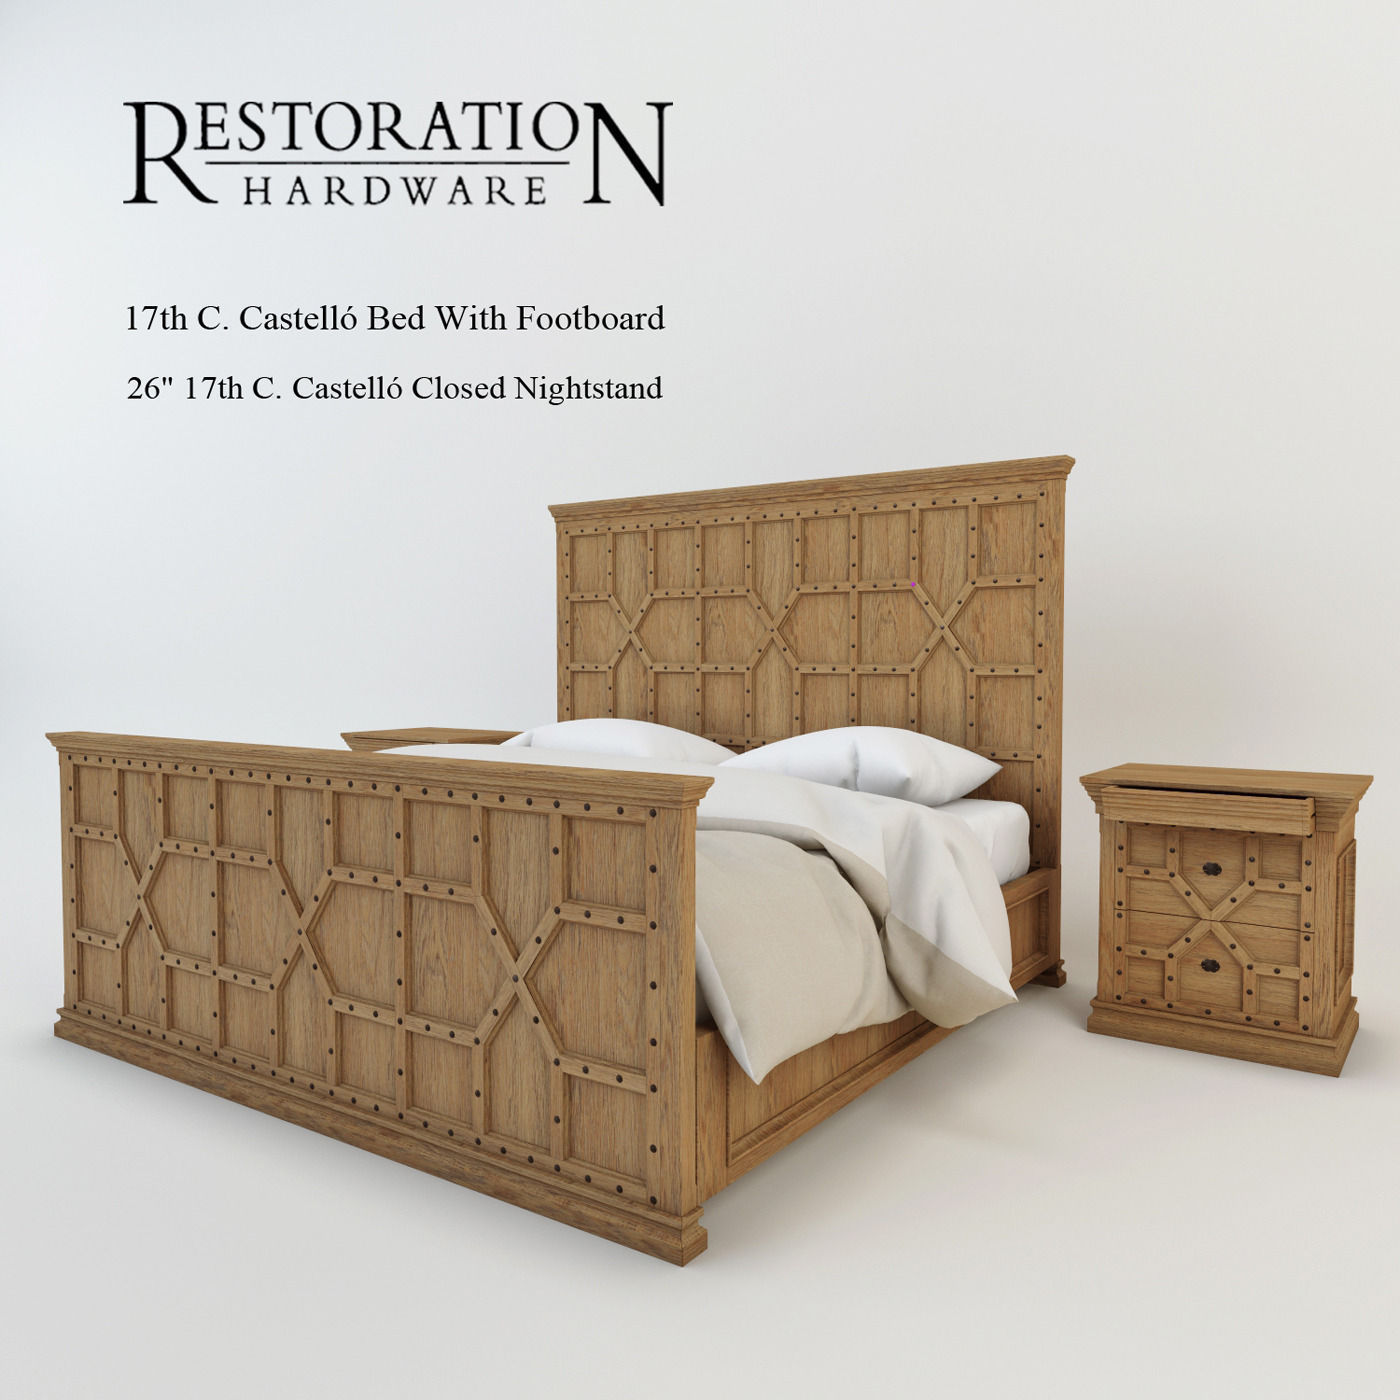 Restoration Hardware 17th C Castello Bed With Footboard 3d Model Max Fbx